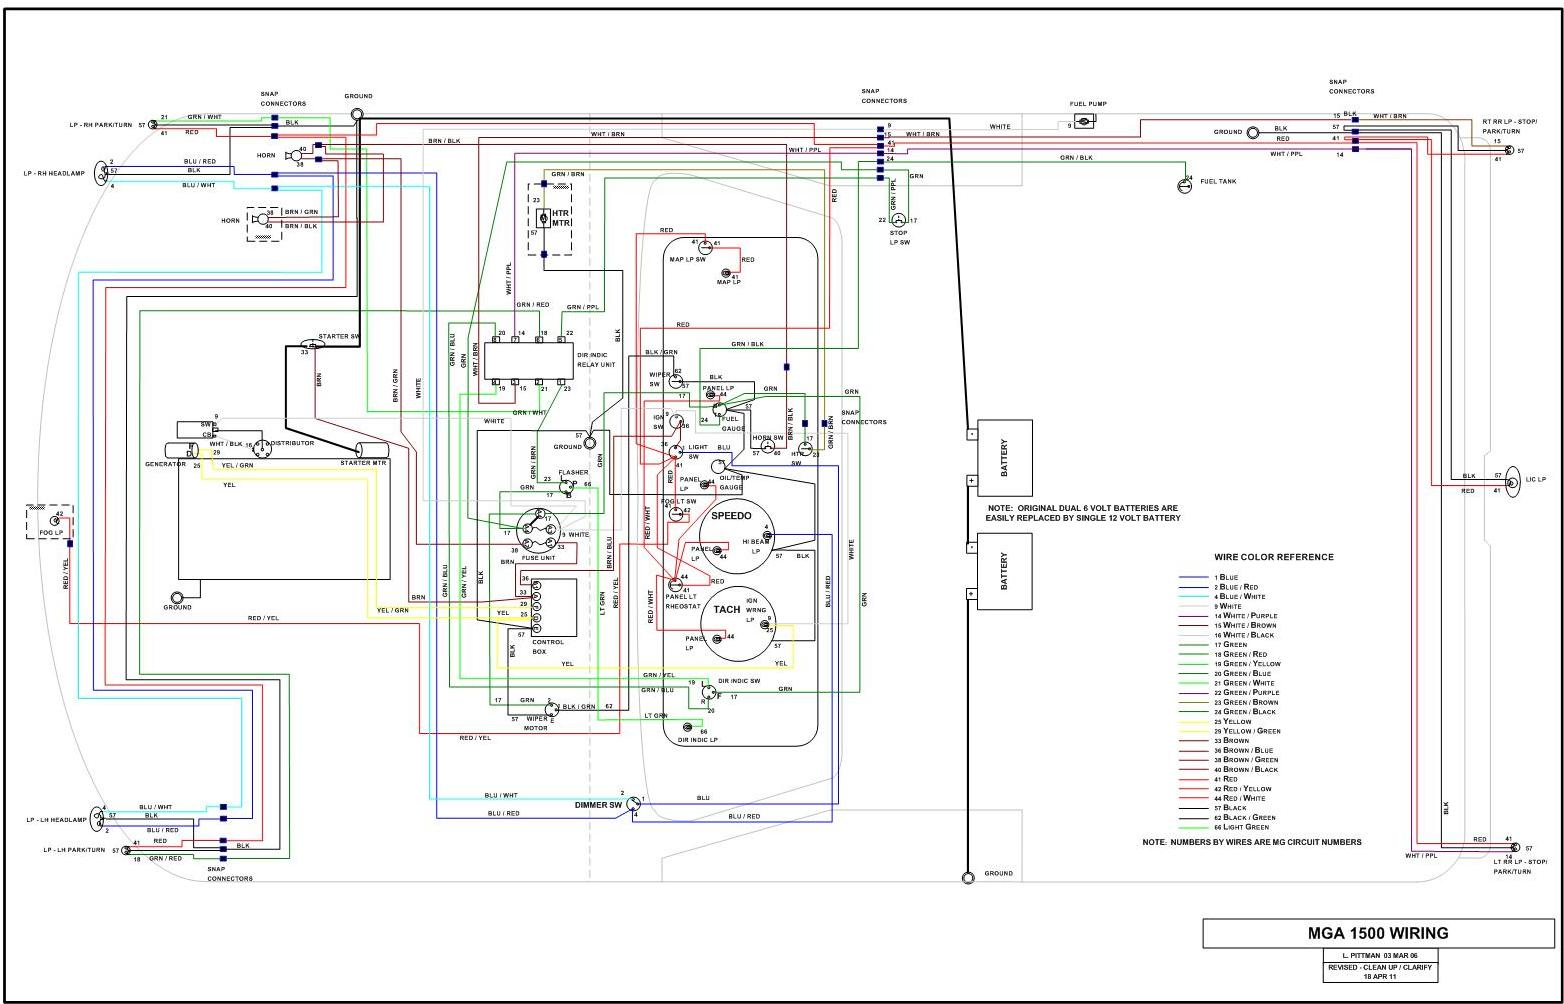 Mga 1500 Wiring Diagram Experts Of 89 F150 Tachometer Subassembly Rh Larrysmga Net Ford Model A Gentex Homelink